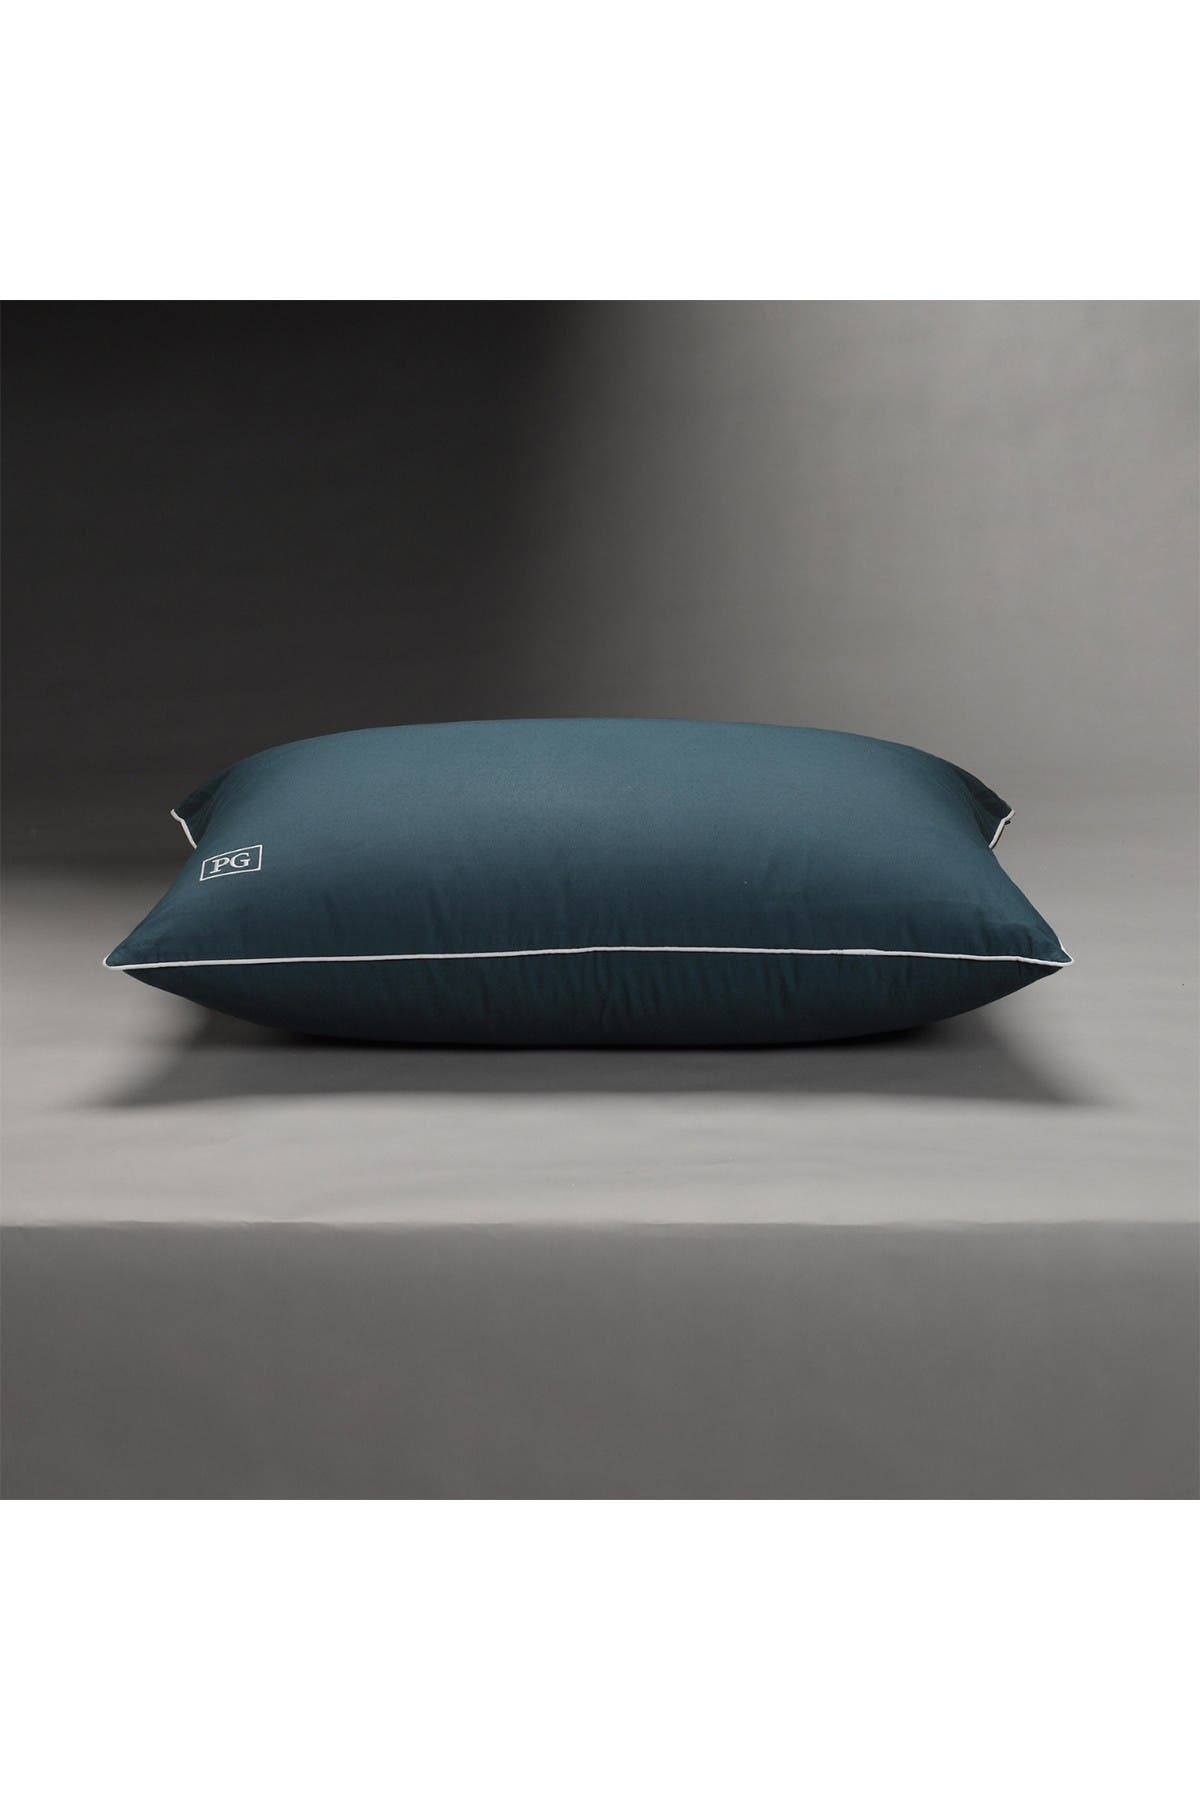 Image of Pillow Guy Down Alternative Side & Back Sleeper Overstuffed Pillow with MicronOne Technology - King Size